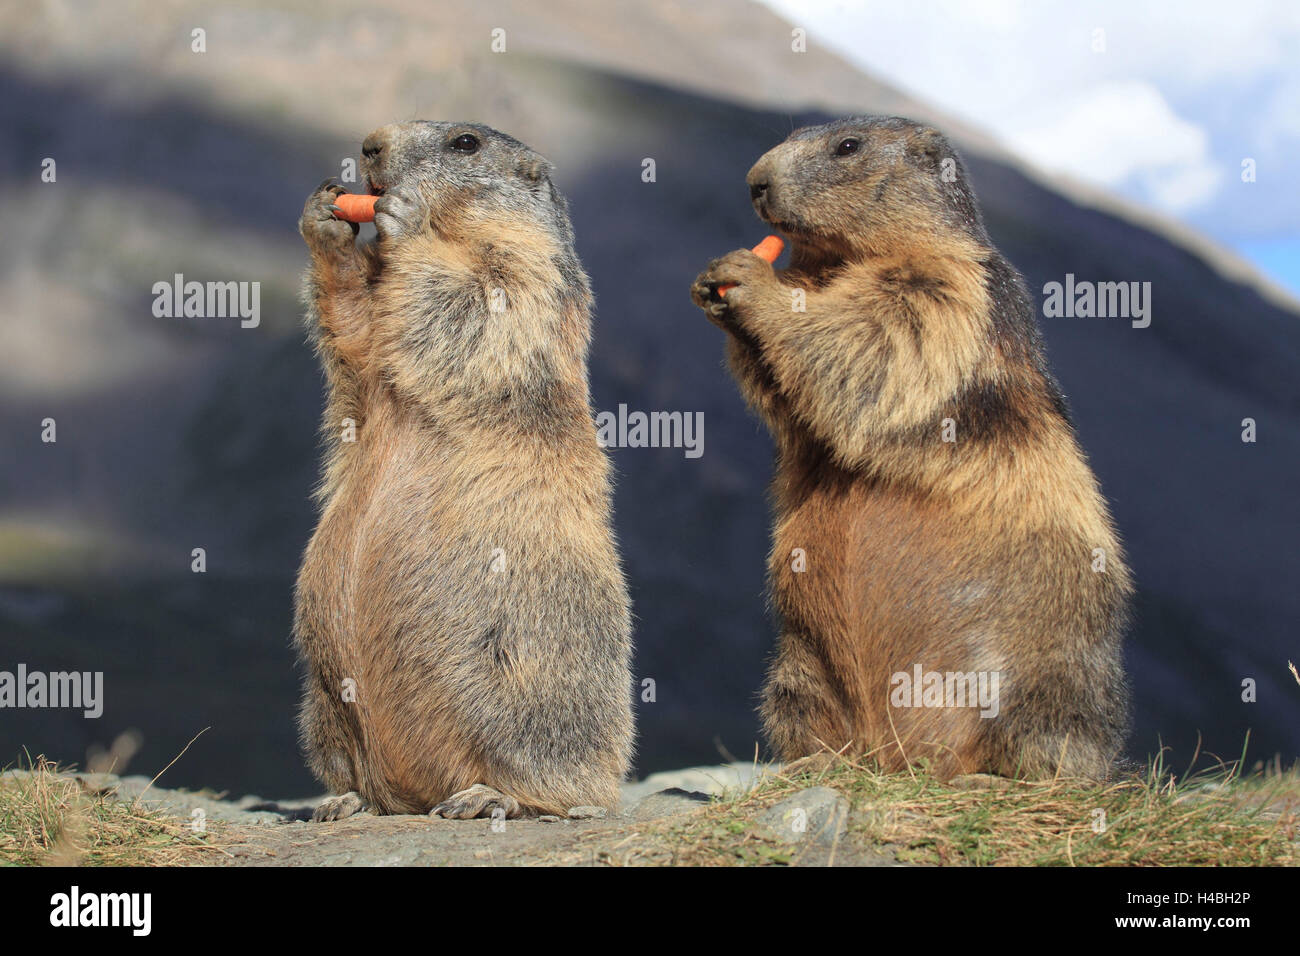 Two alp groundhogs, - Stock Image